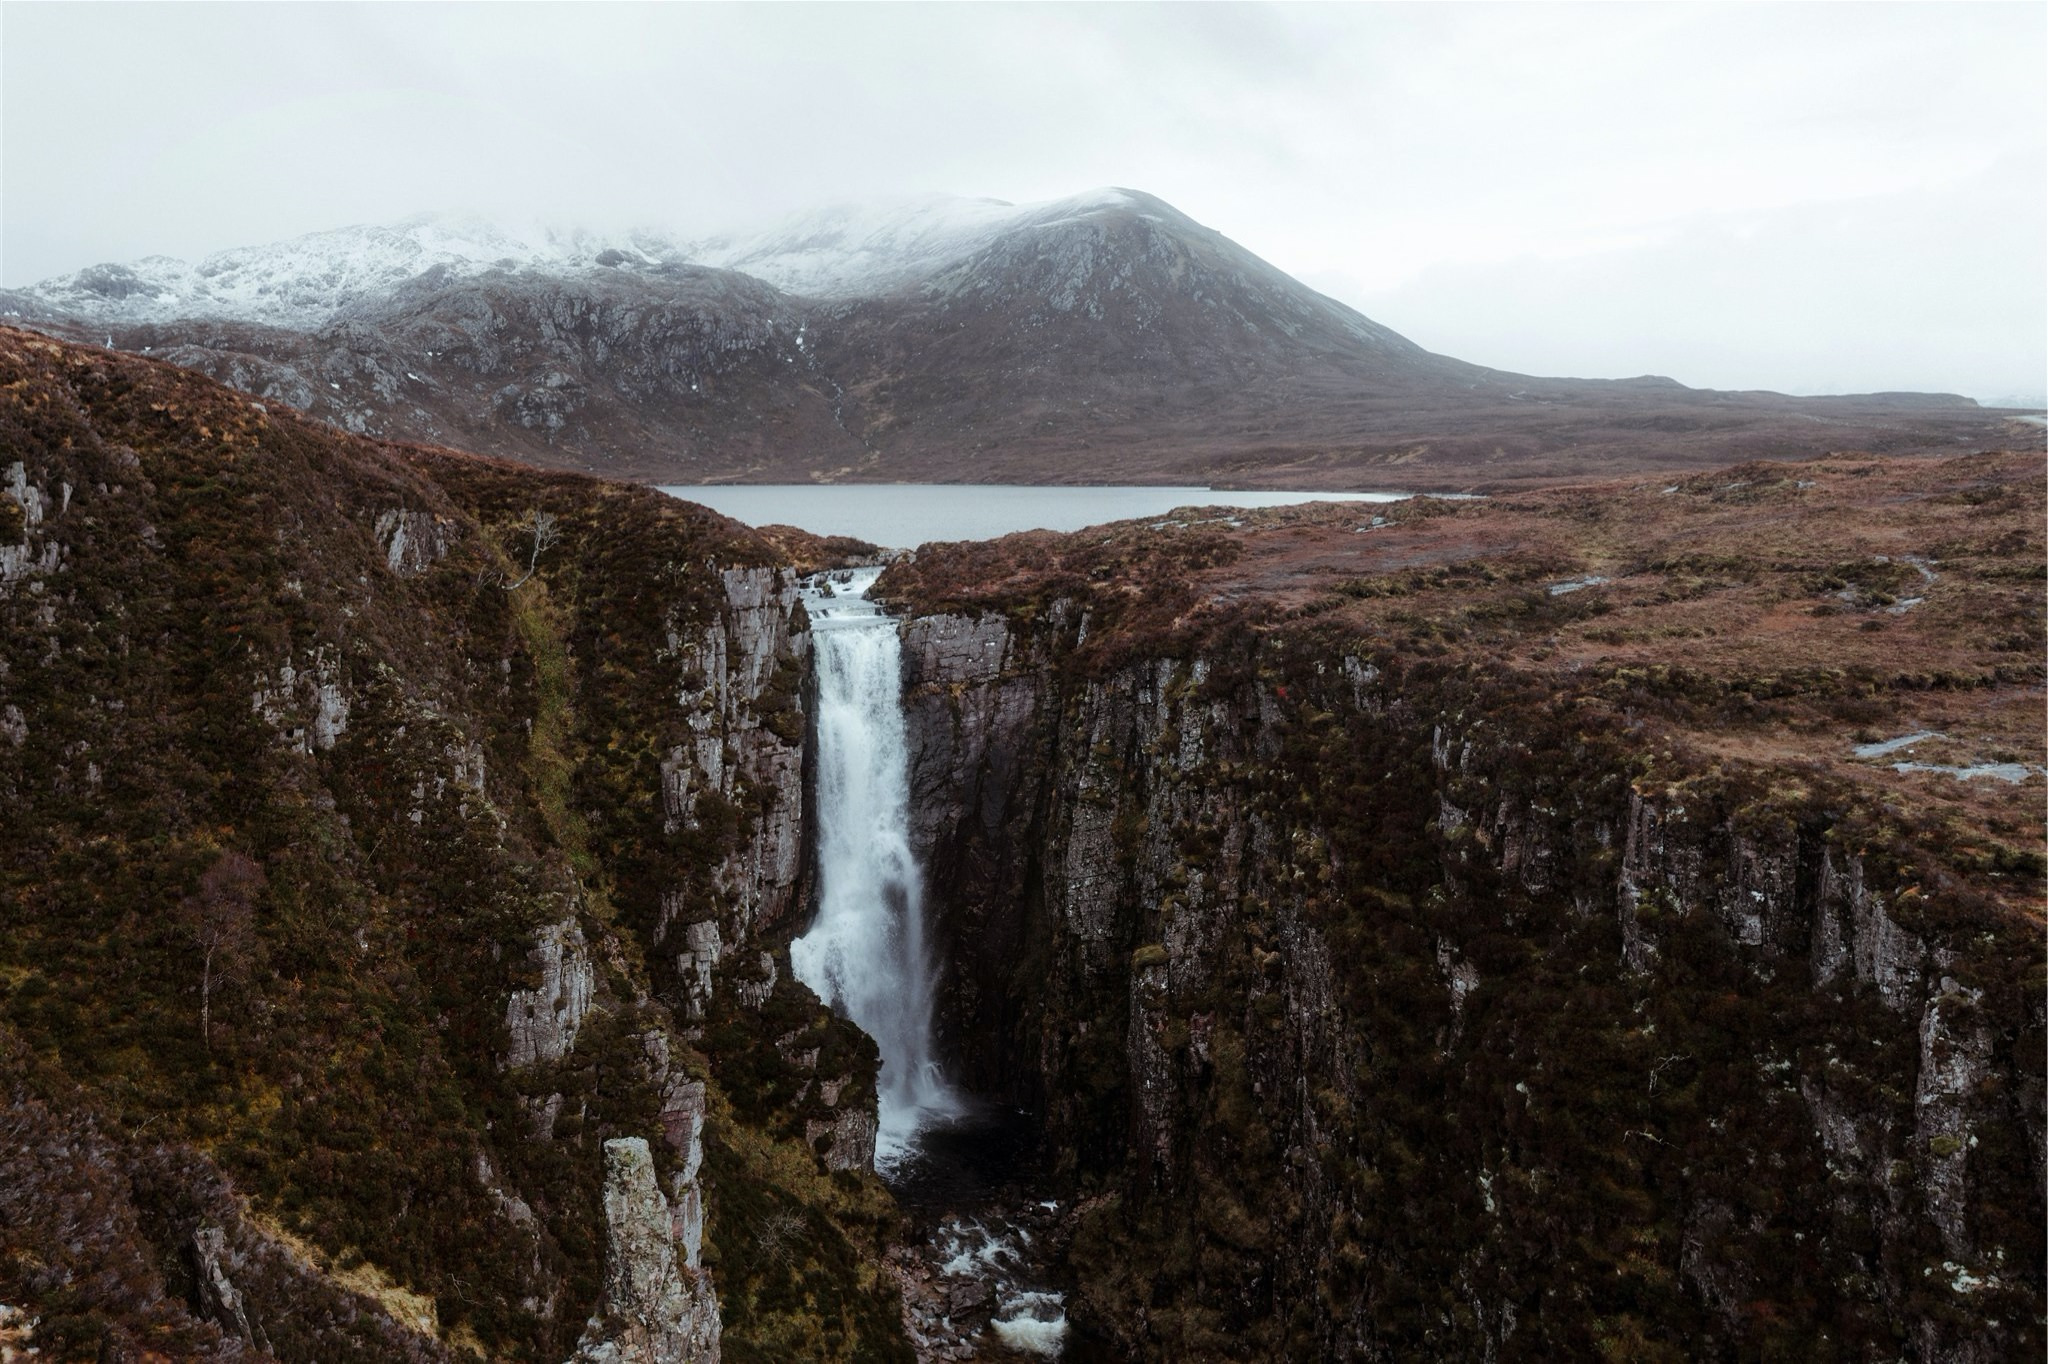 Waterfall with mountain backdrop in Assynt, Scotland